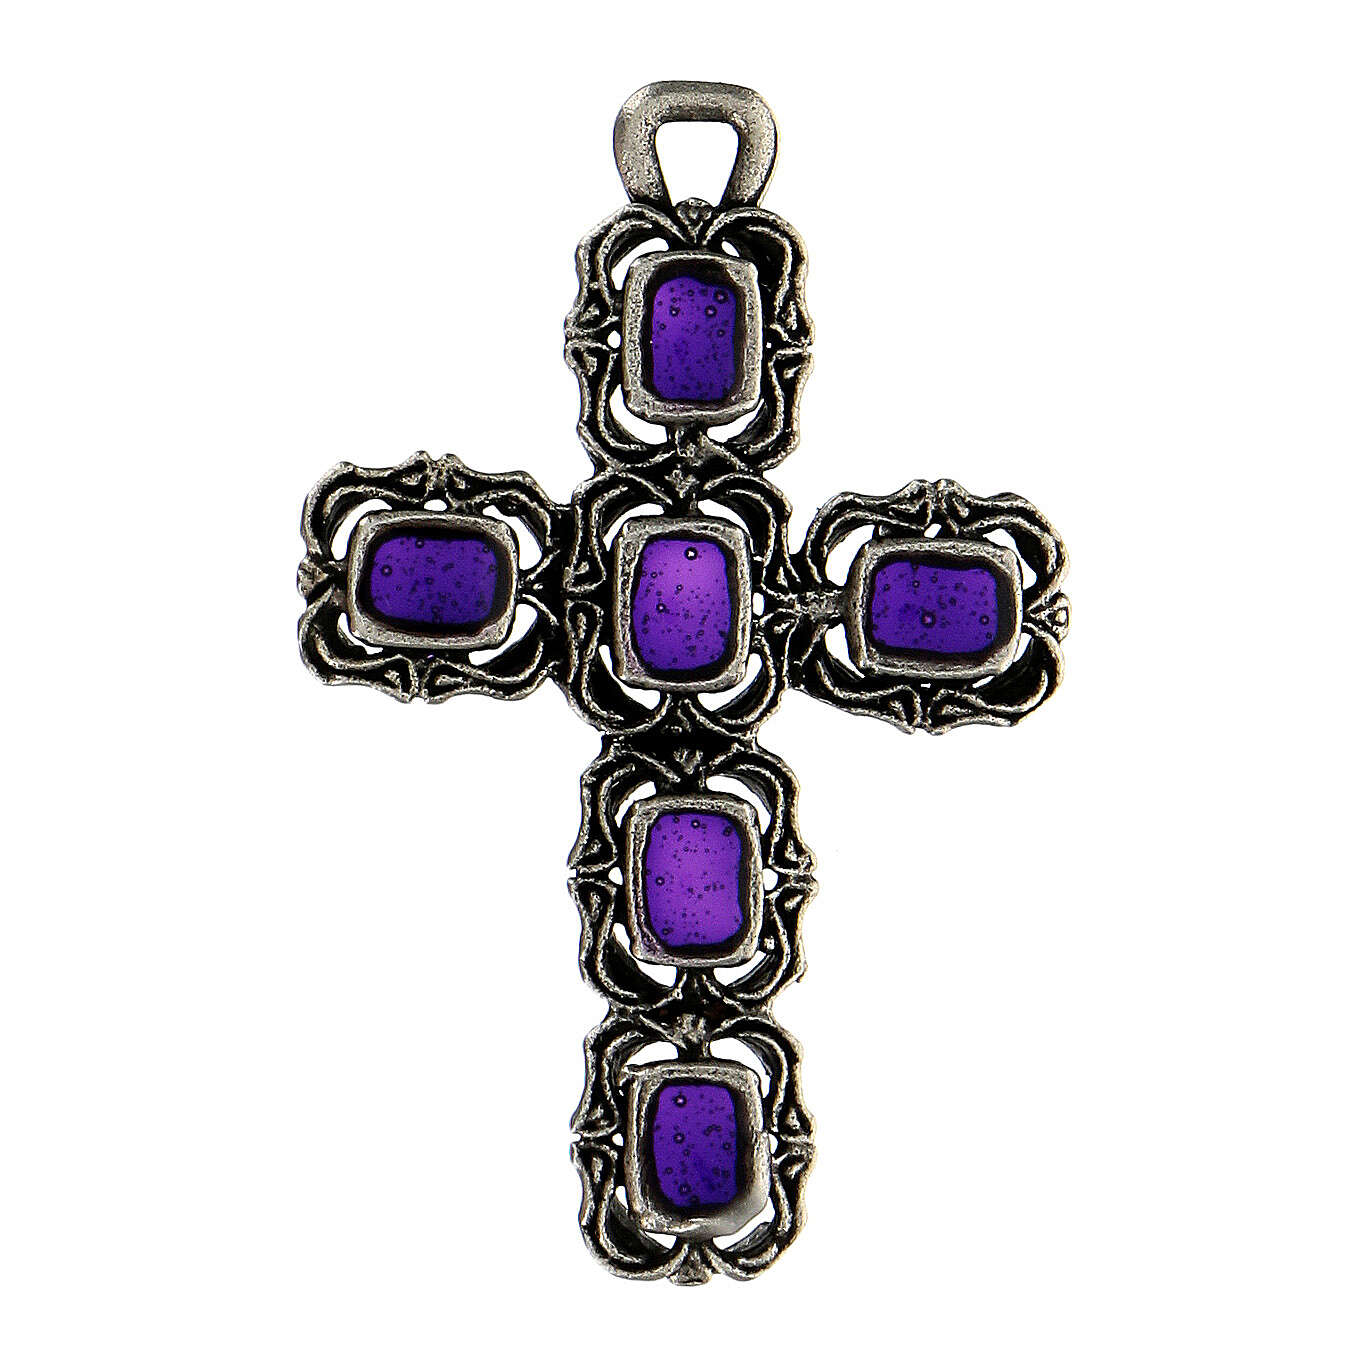 Cathedral cross in antique silver and purple enamel 4